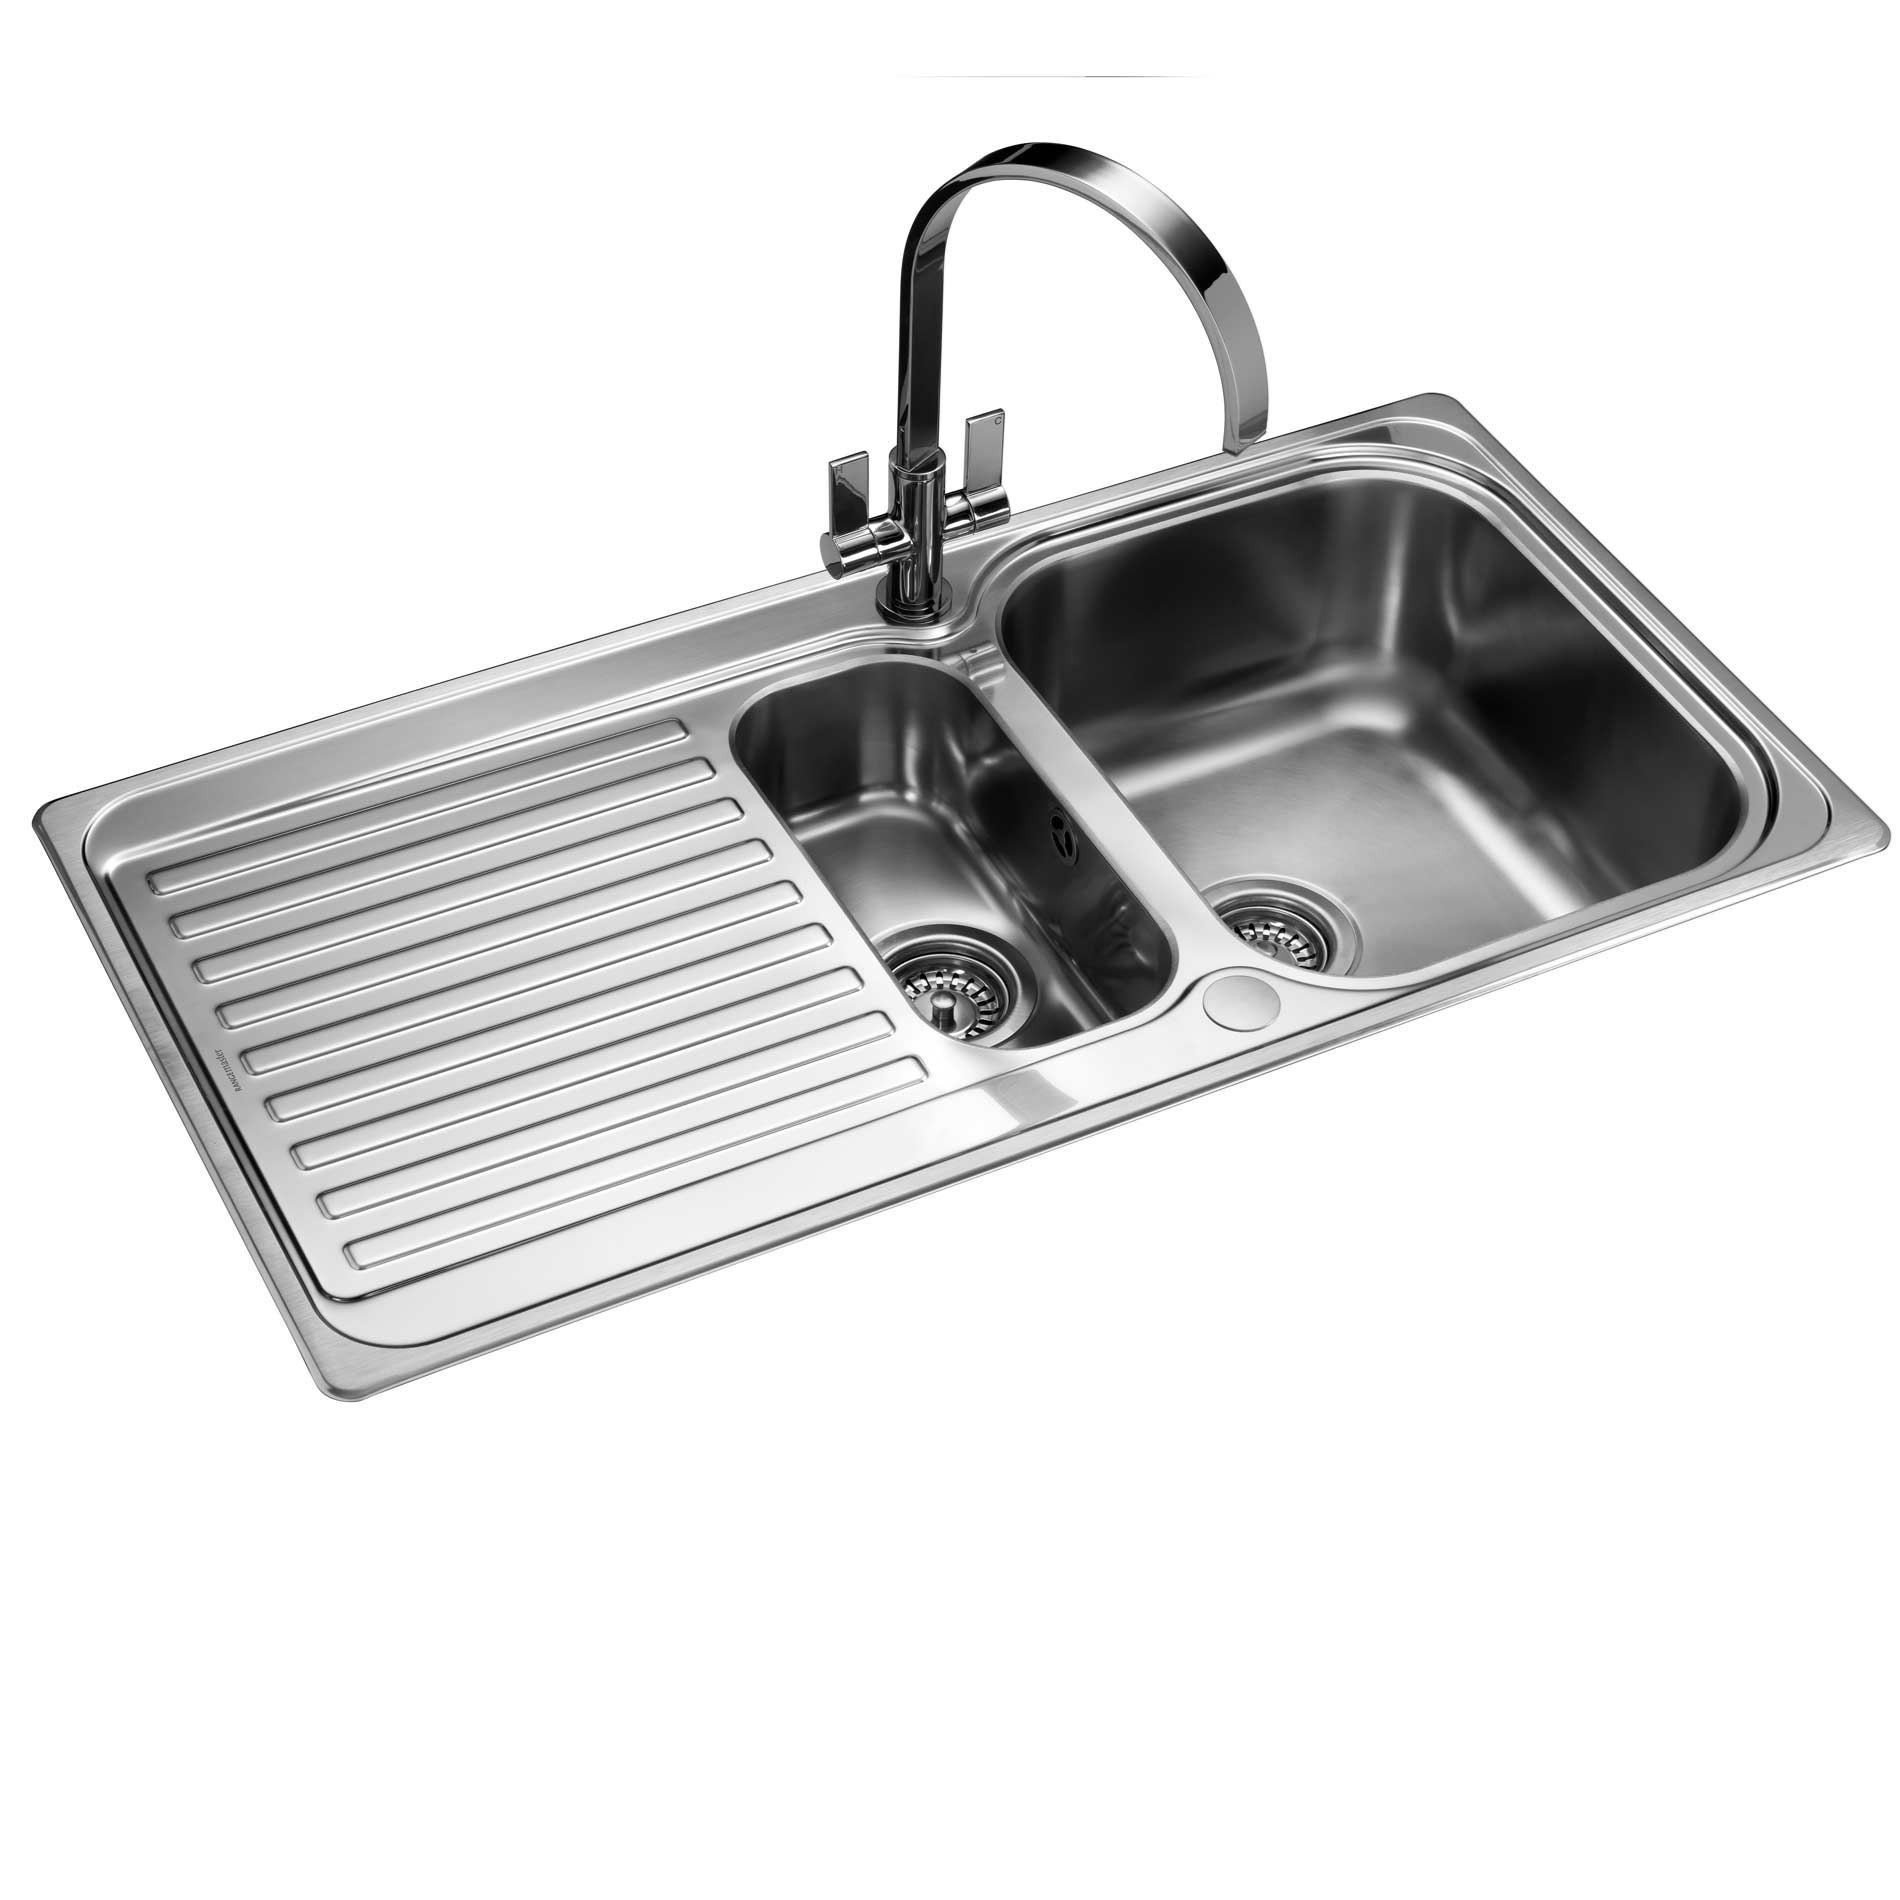 how to clean stainless steel sink uk